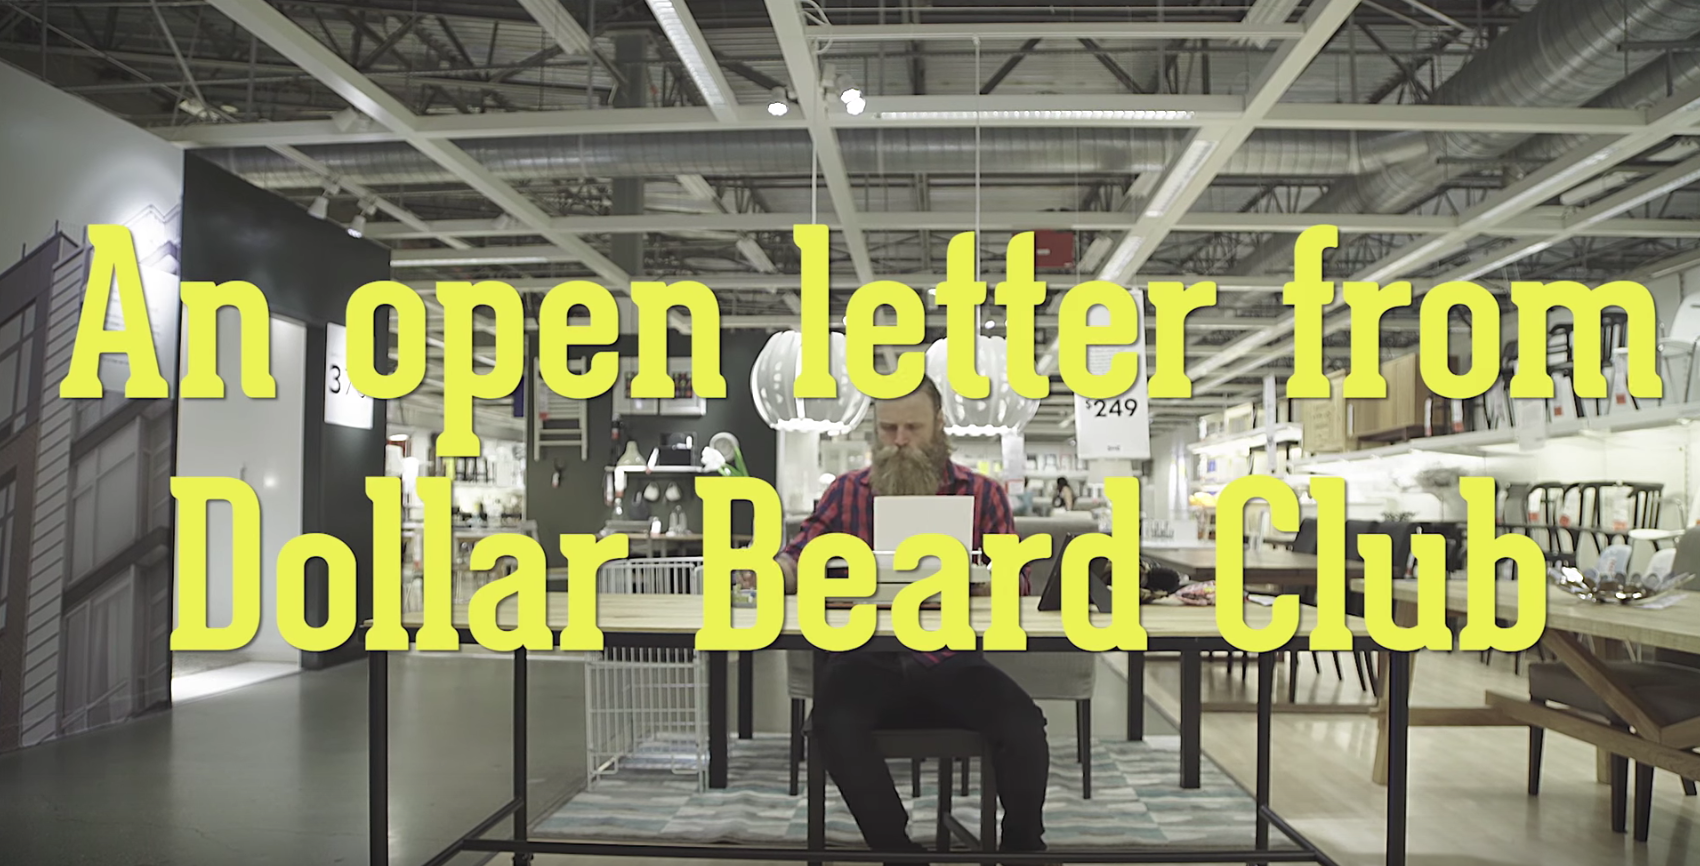 creative content marketing an open letter from dollar beard club